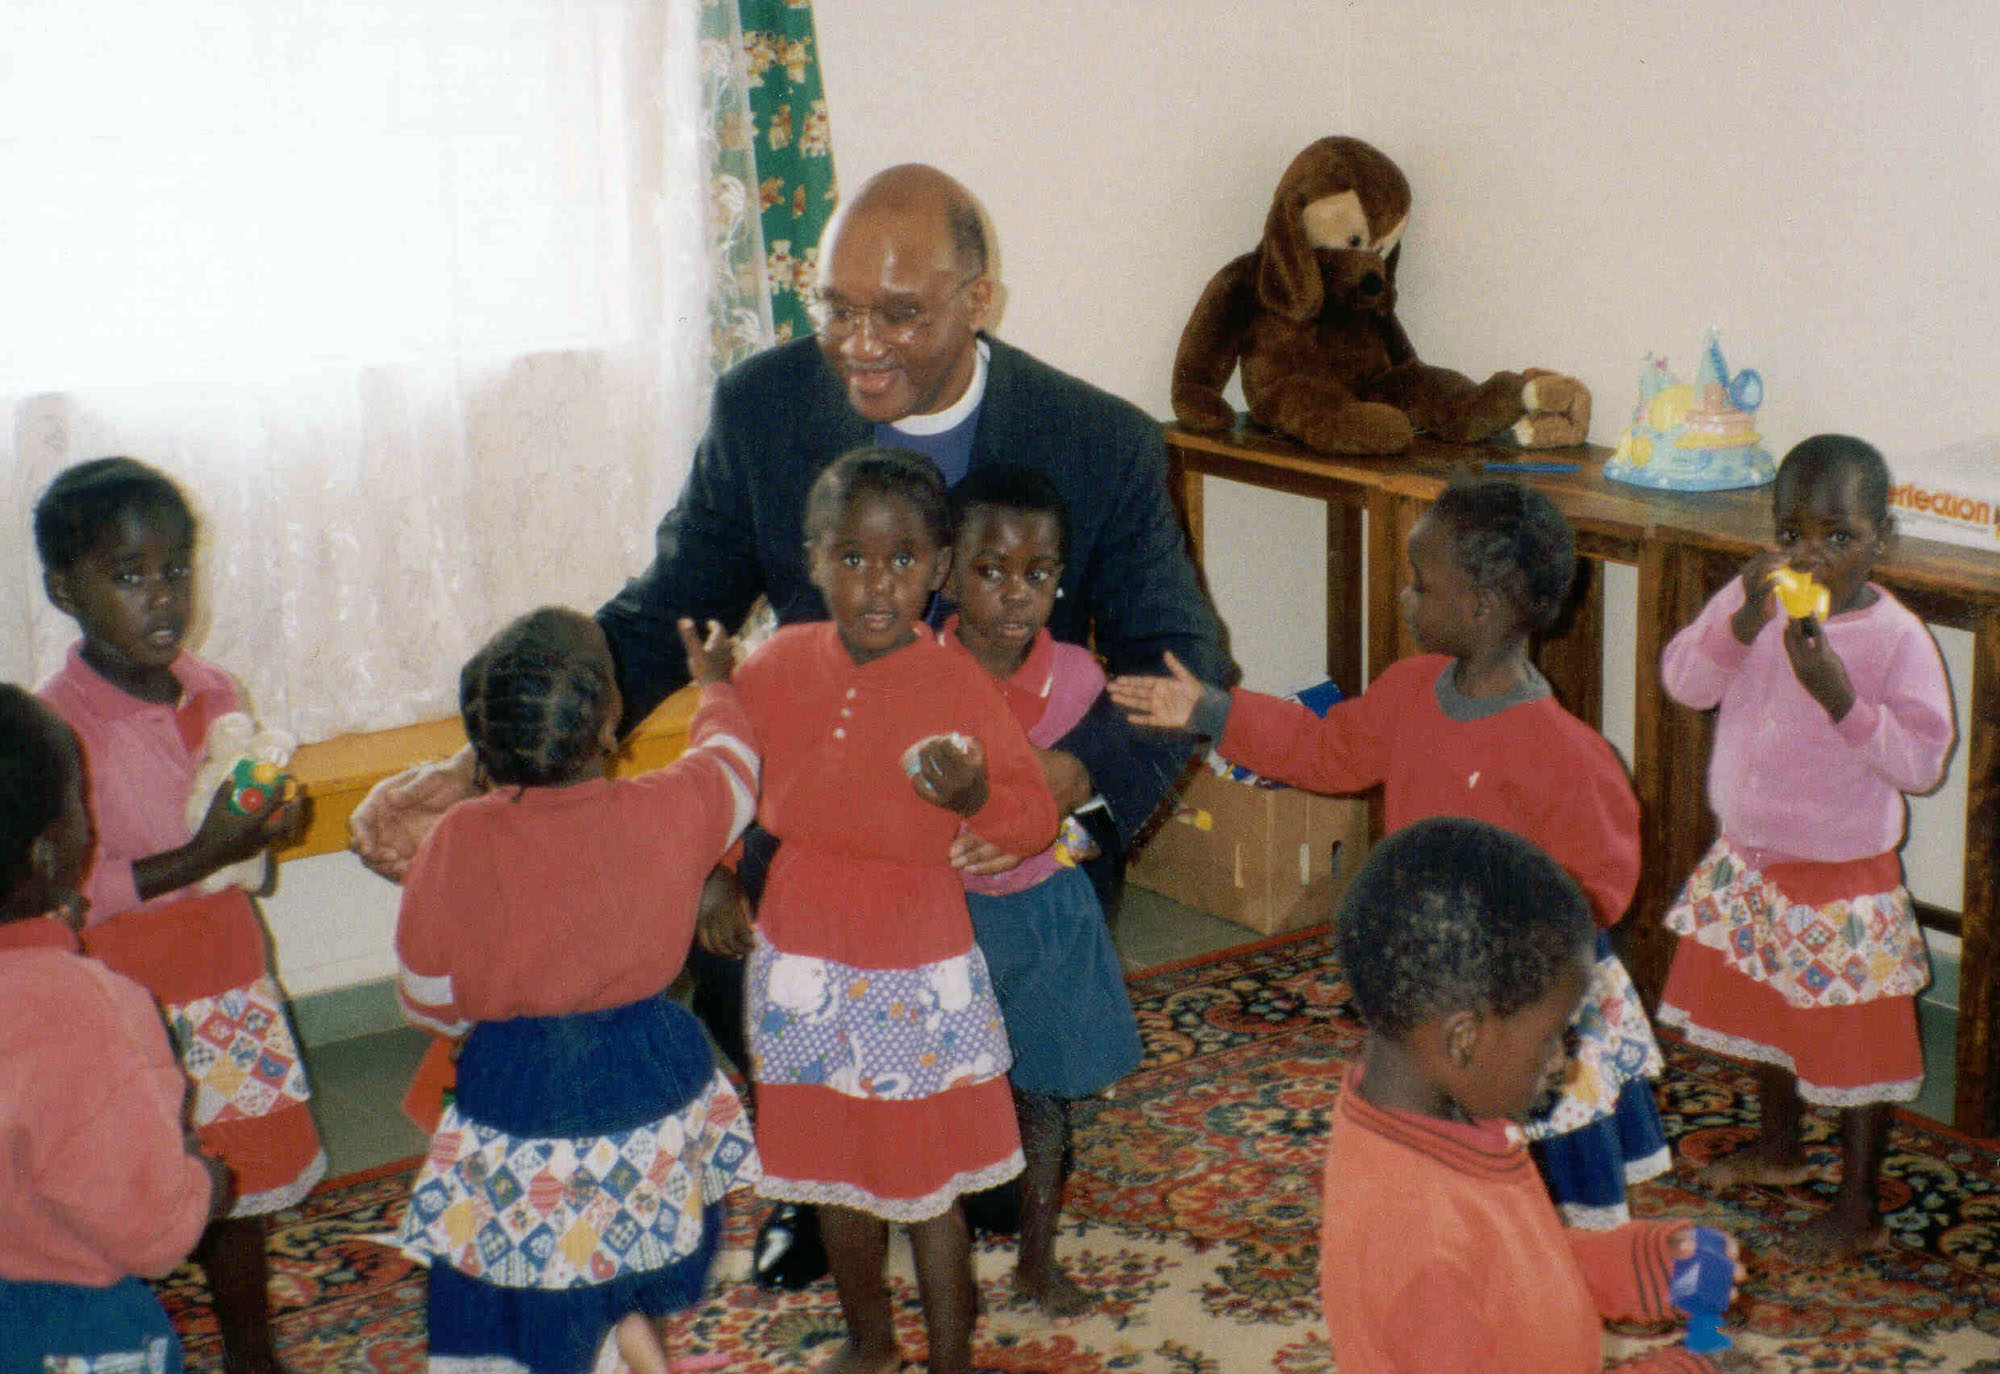 United Methodist Bishop Felton May plays with children at a Zambian orphanage in 1999 during a trip in support of a Presidential Mission on Children and AIDS.  The trip